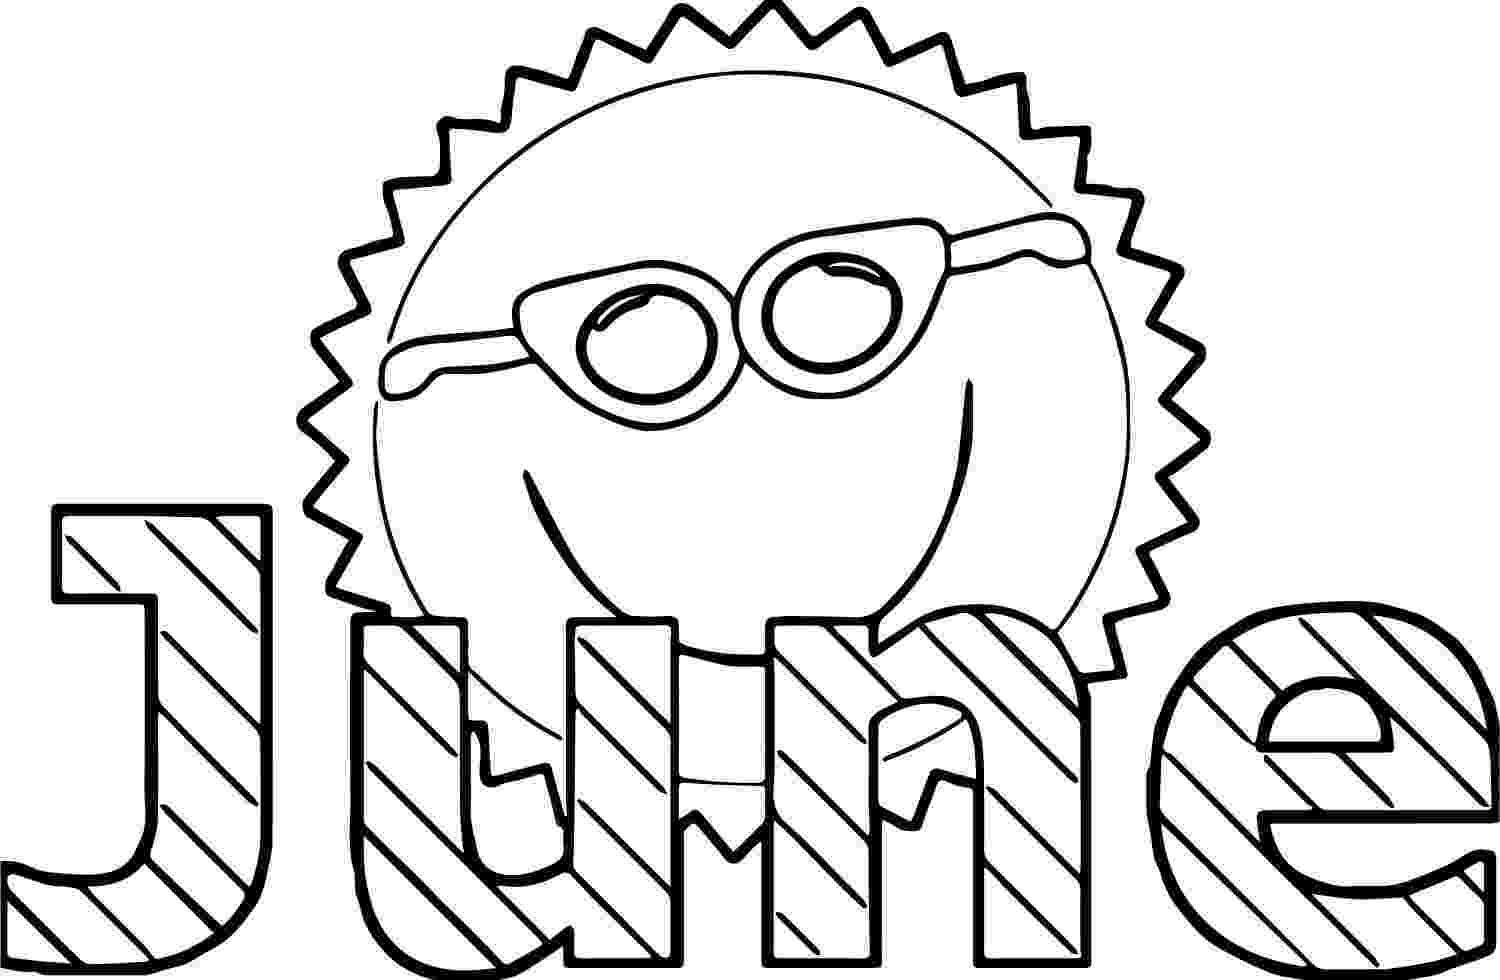 colouring pages for june june coloring pages to download and print for free colouring for june pages